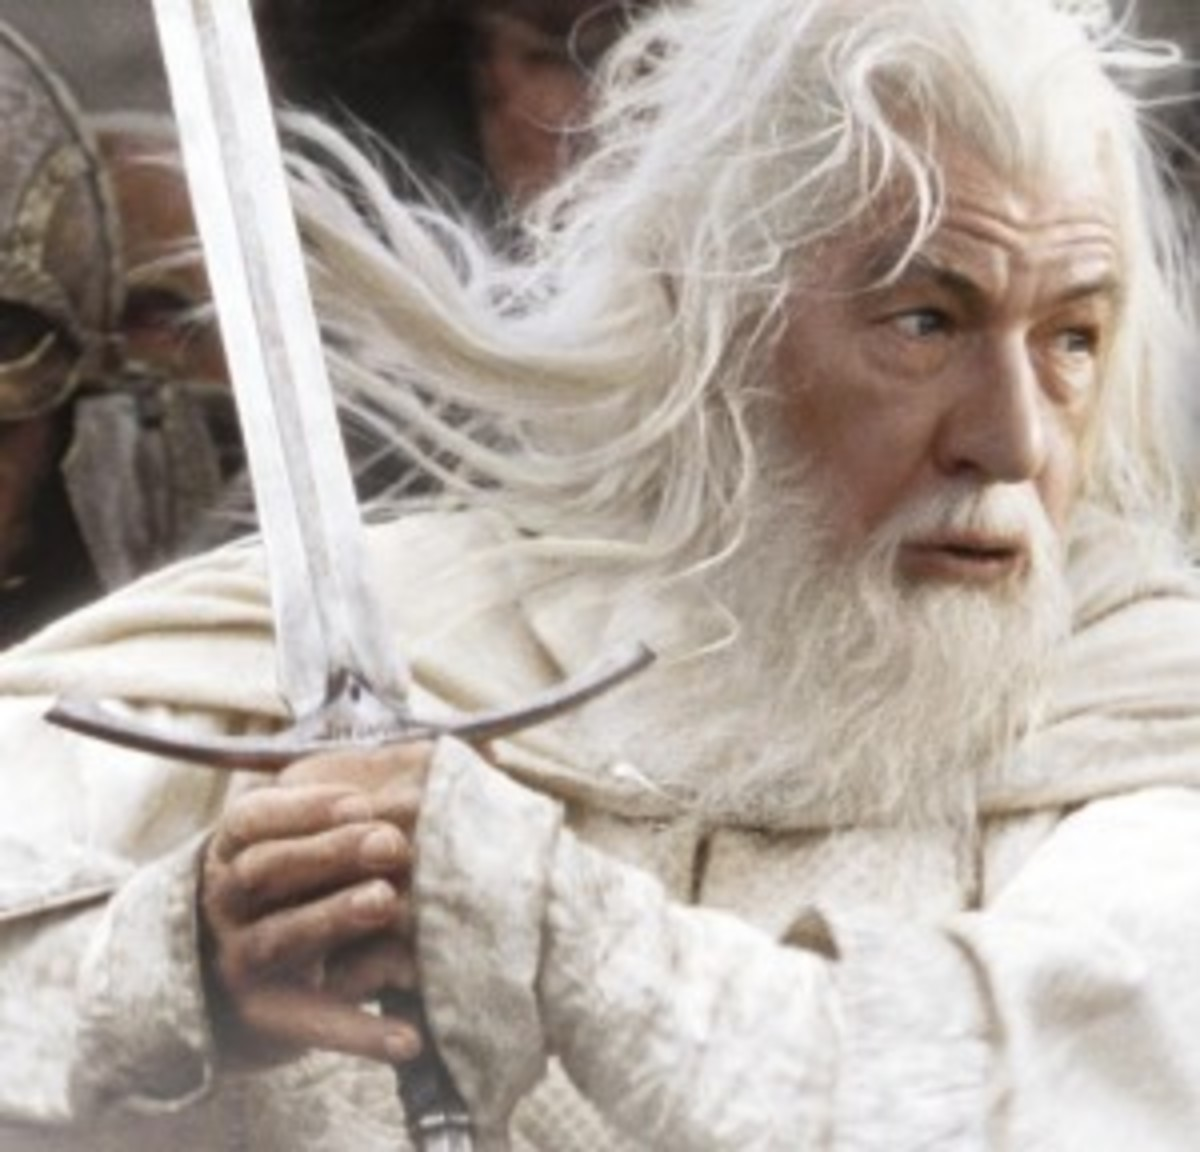 Gandalf teaches Frodo that all we have to decide is what to do with the time that is given to us in The Lord of the Rings: The Fellowship of the Ring.